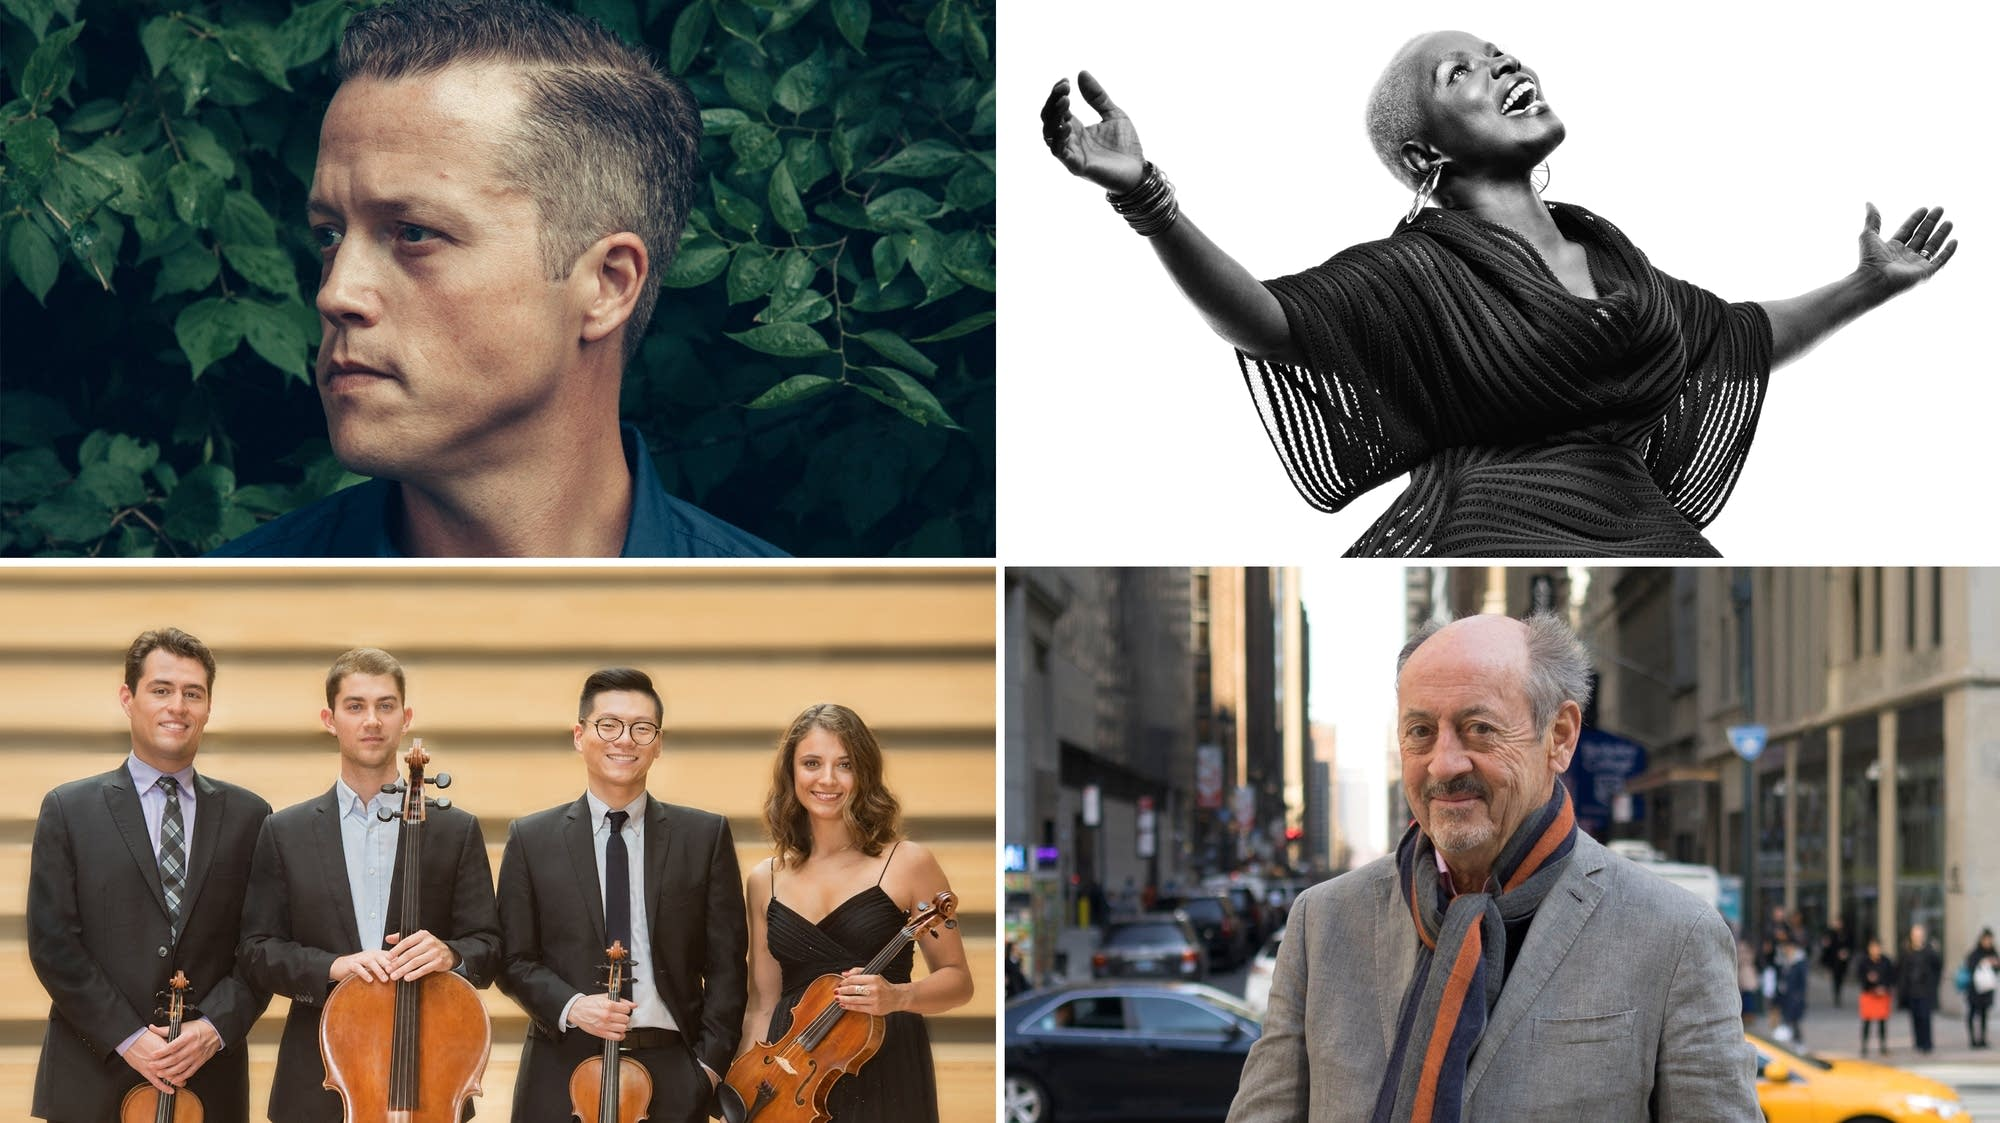 Jason Isbell, Angélique Kidjo, the Dover Quartet, Billy Collins